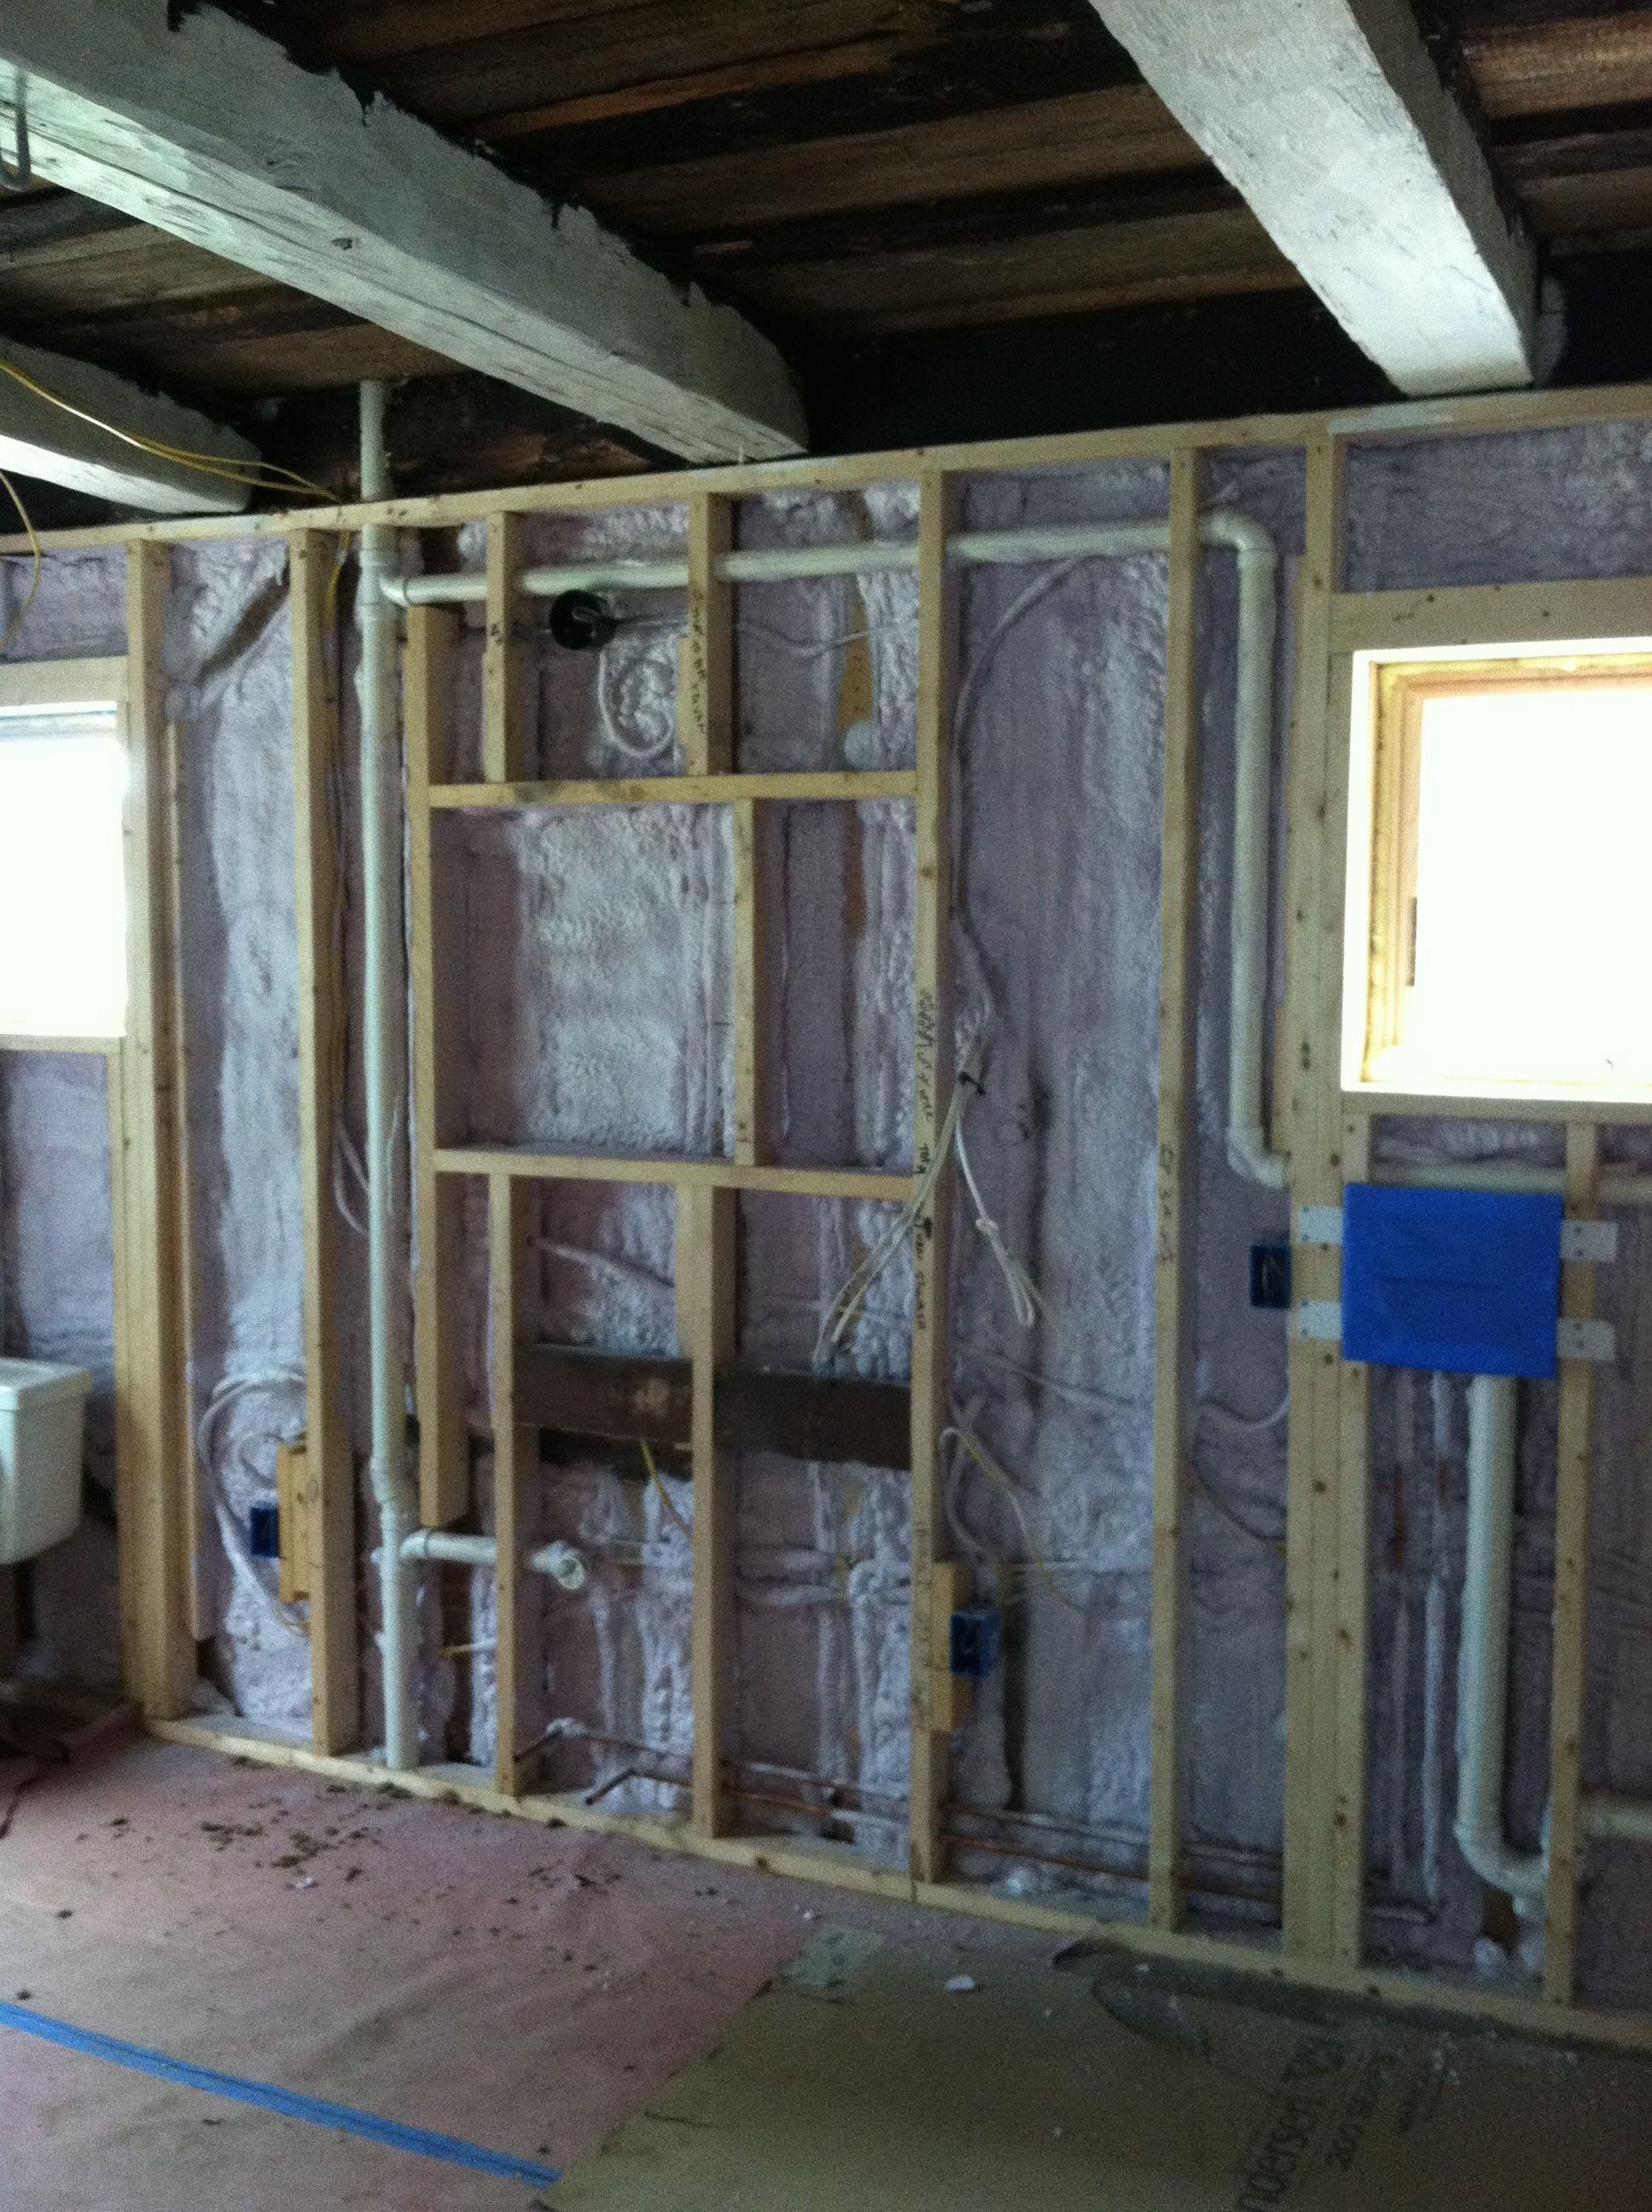 The Wonders And Joys Of Spray Foam Insulation Now We Can Start The Inside Finish Work Woooohoooo Foam Insulation Spray Foam Insulation Spray Foam